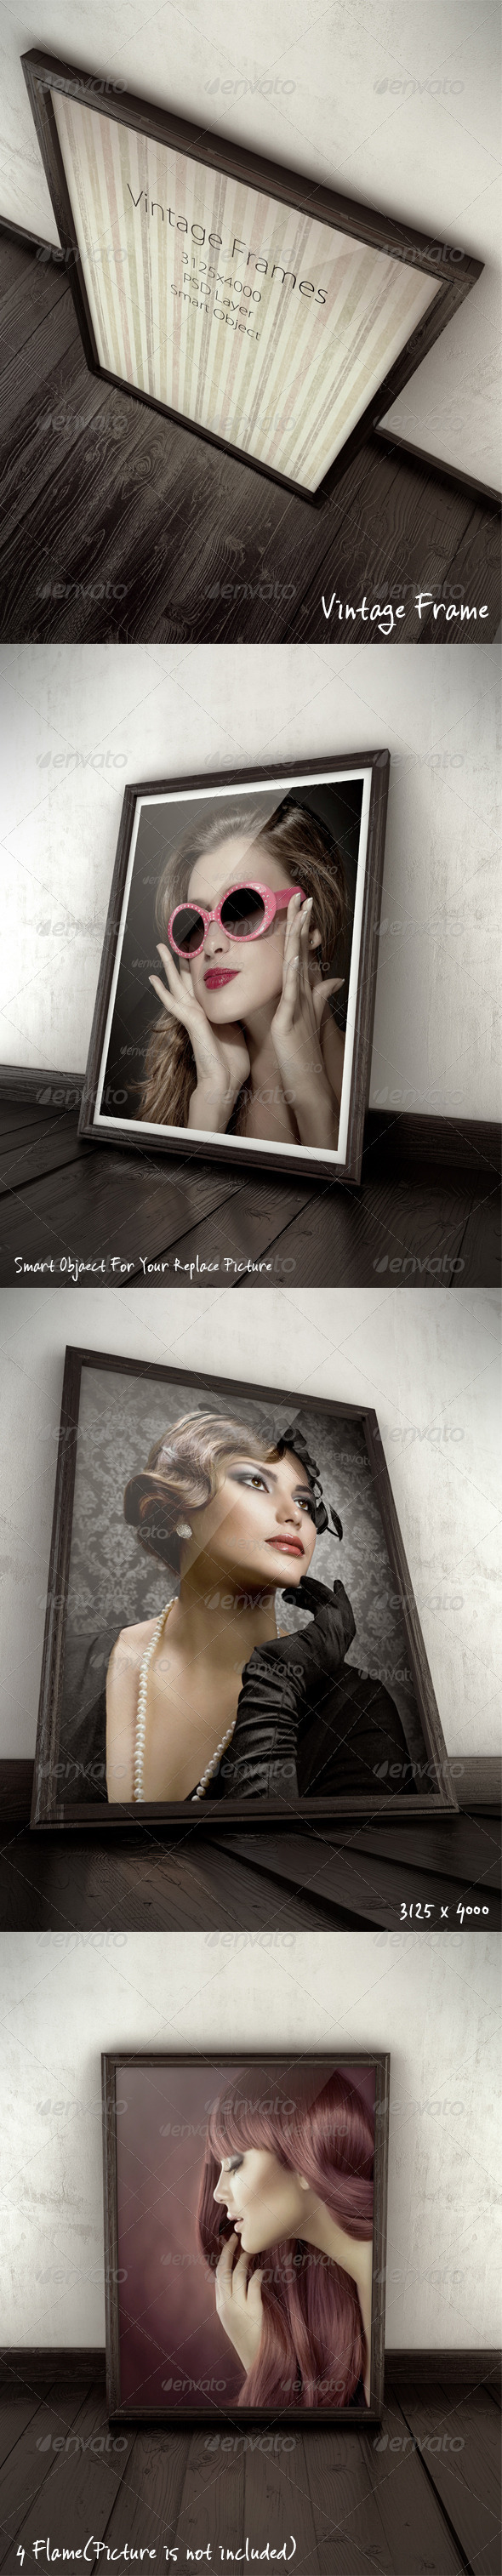 Vintage Frames Mock-Ups - Miscellaneous Displays